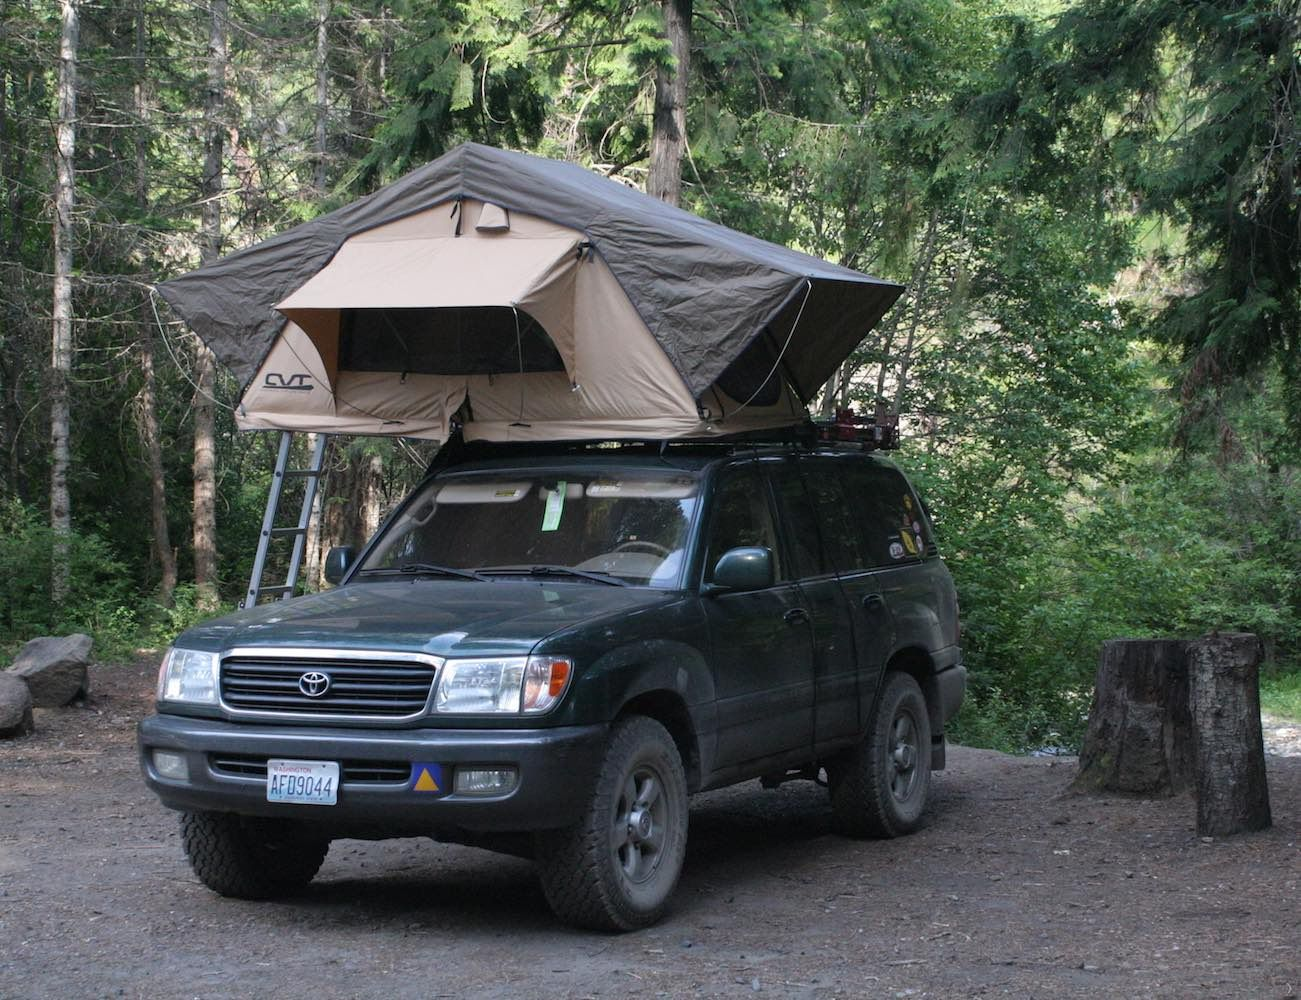 Bailey Roof Top Tent by CVT » Review & Bailey Roof Top Tent by CVT » Review | Camping | Pinterest | Roof ...